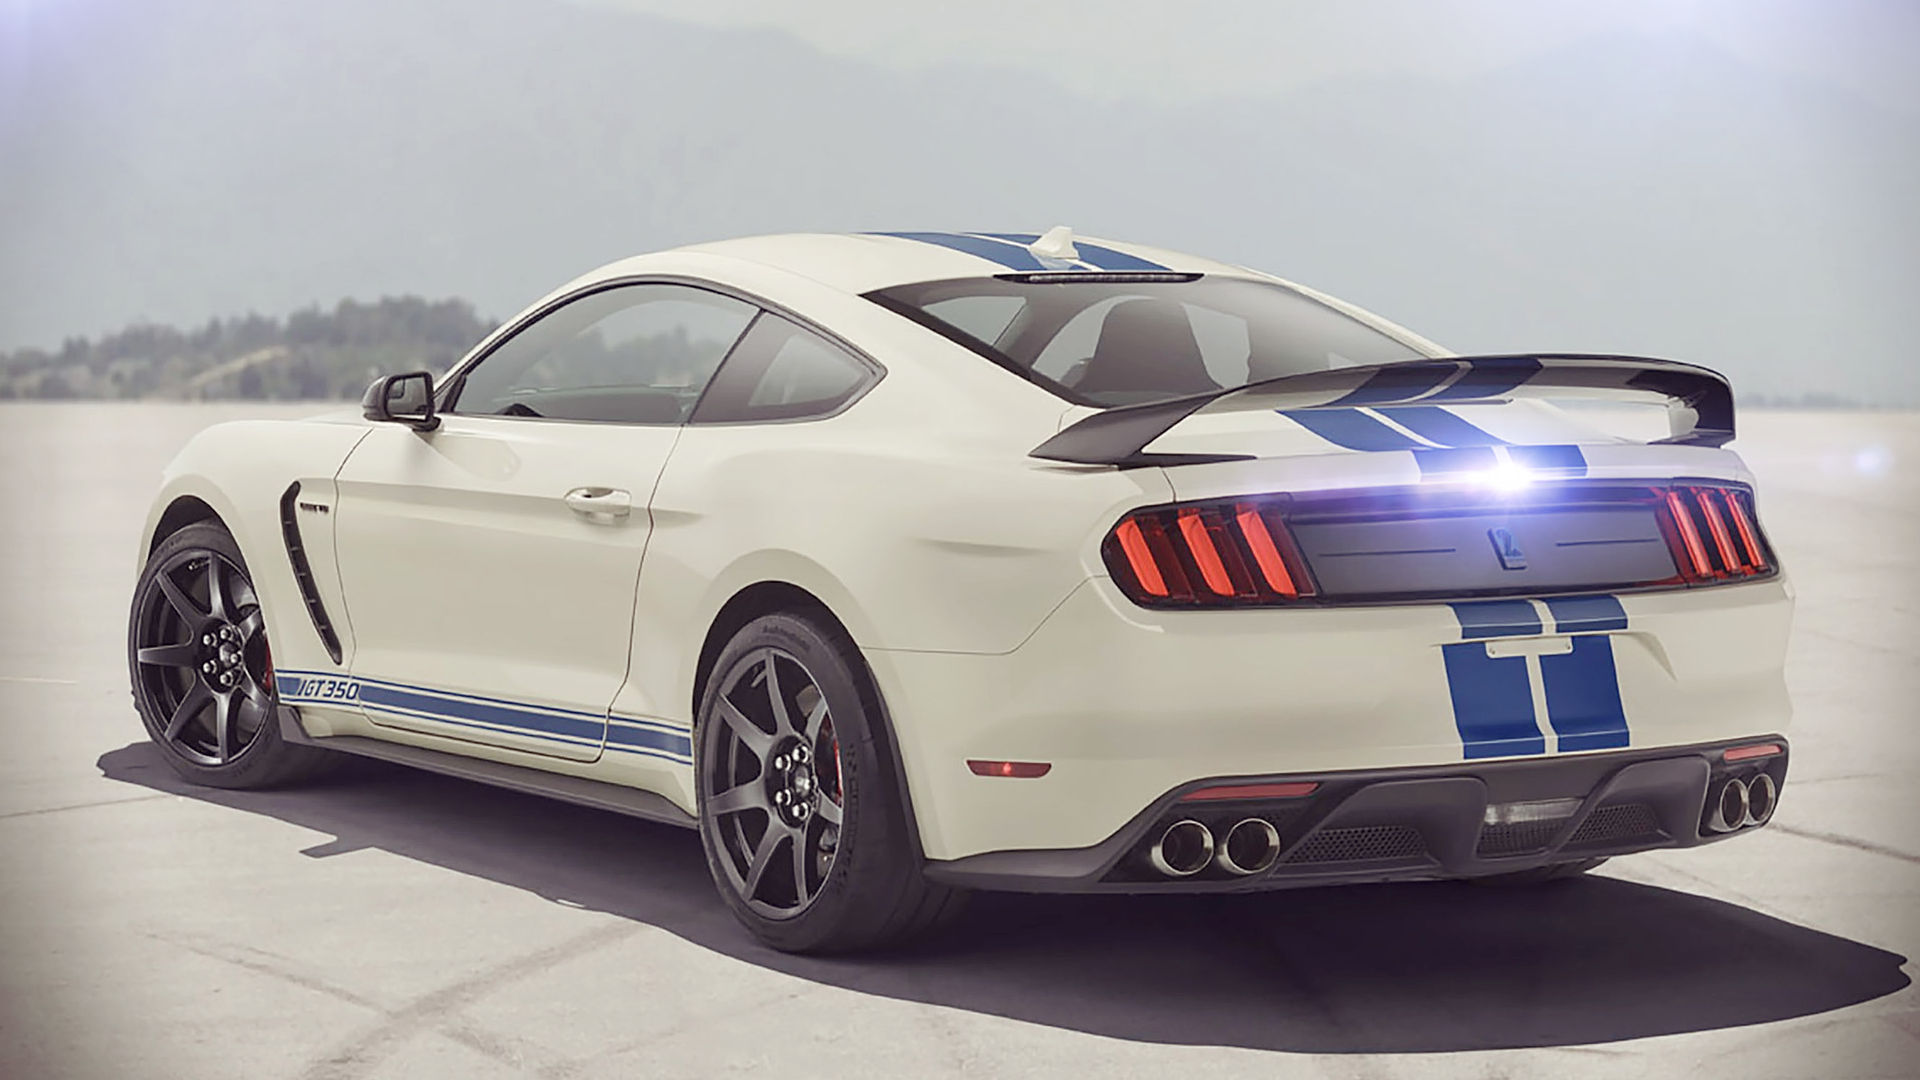 Ford Mustang Shelby GT350 2020 Wallpaper 1920x1080